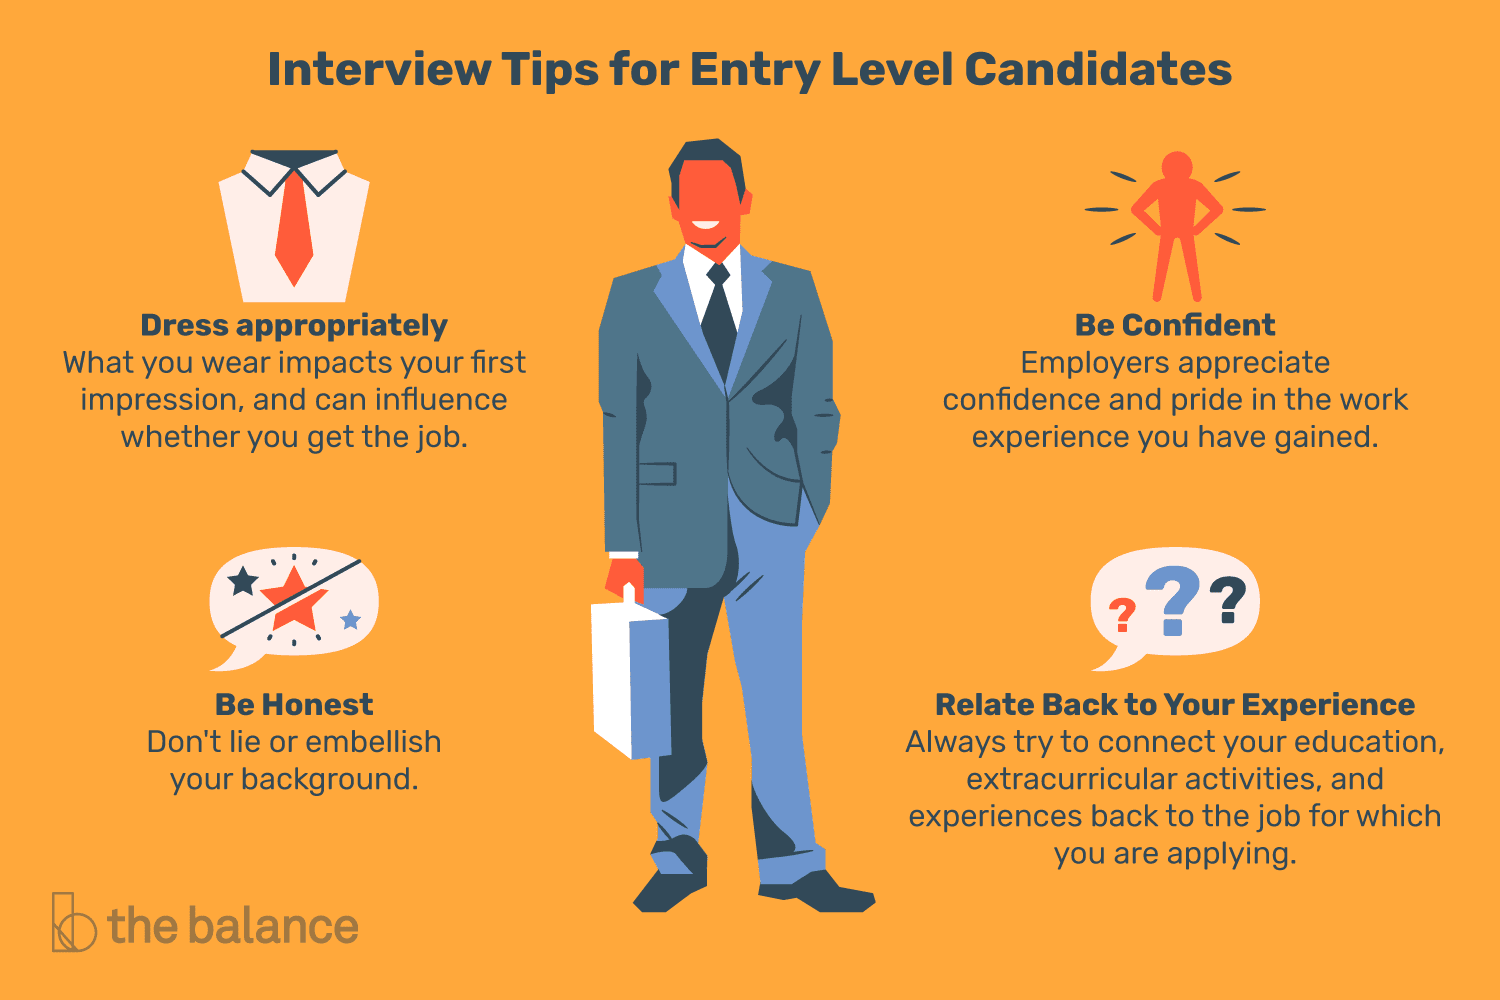 Common Entry-Level Interview Questions and Answers